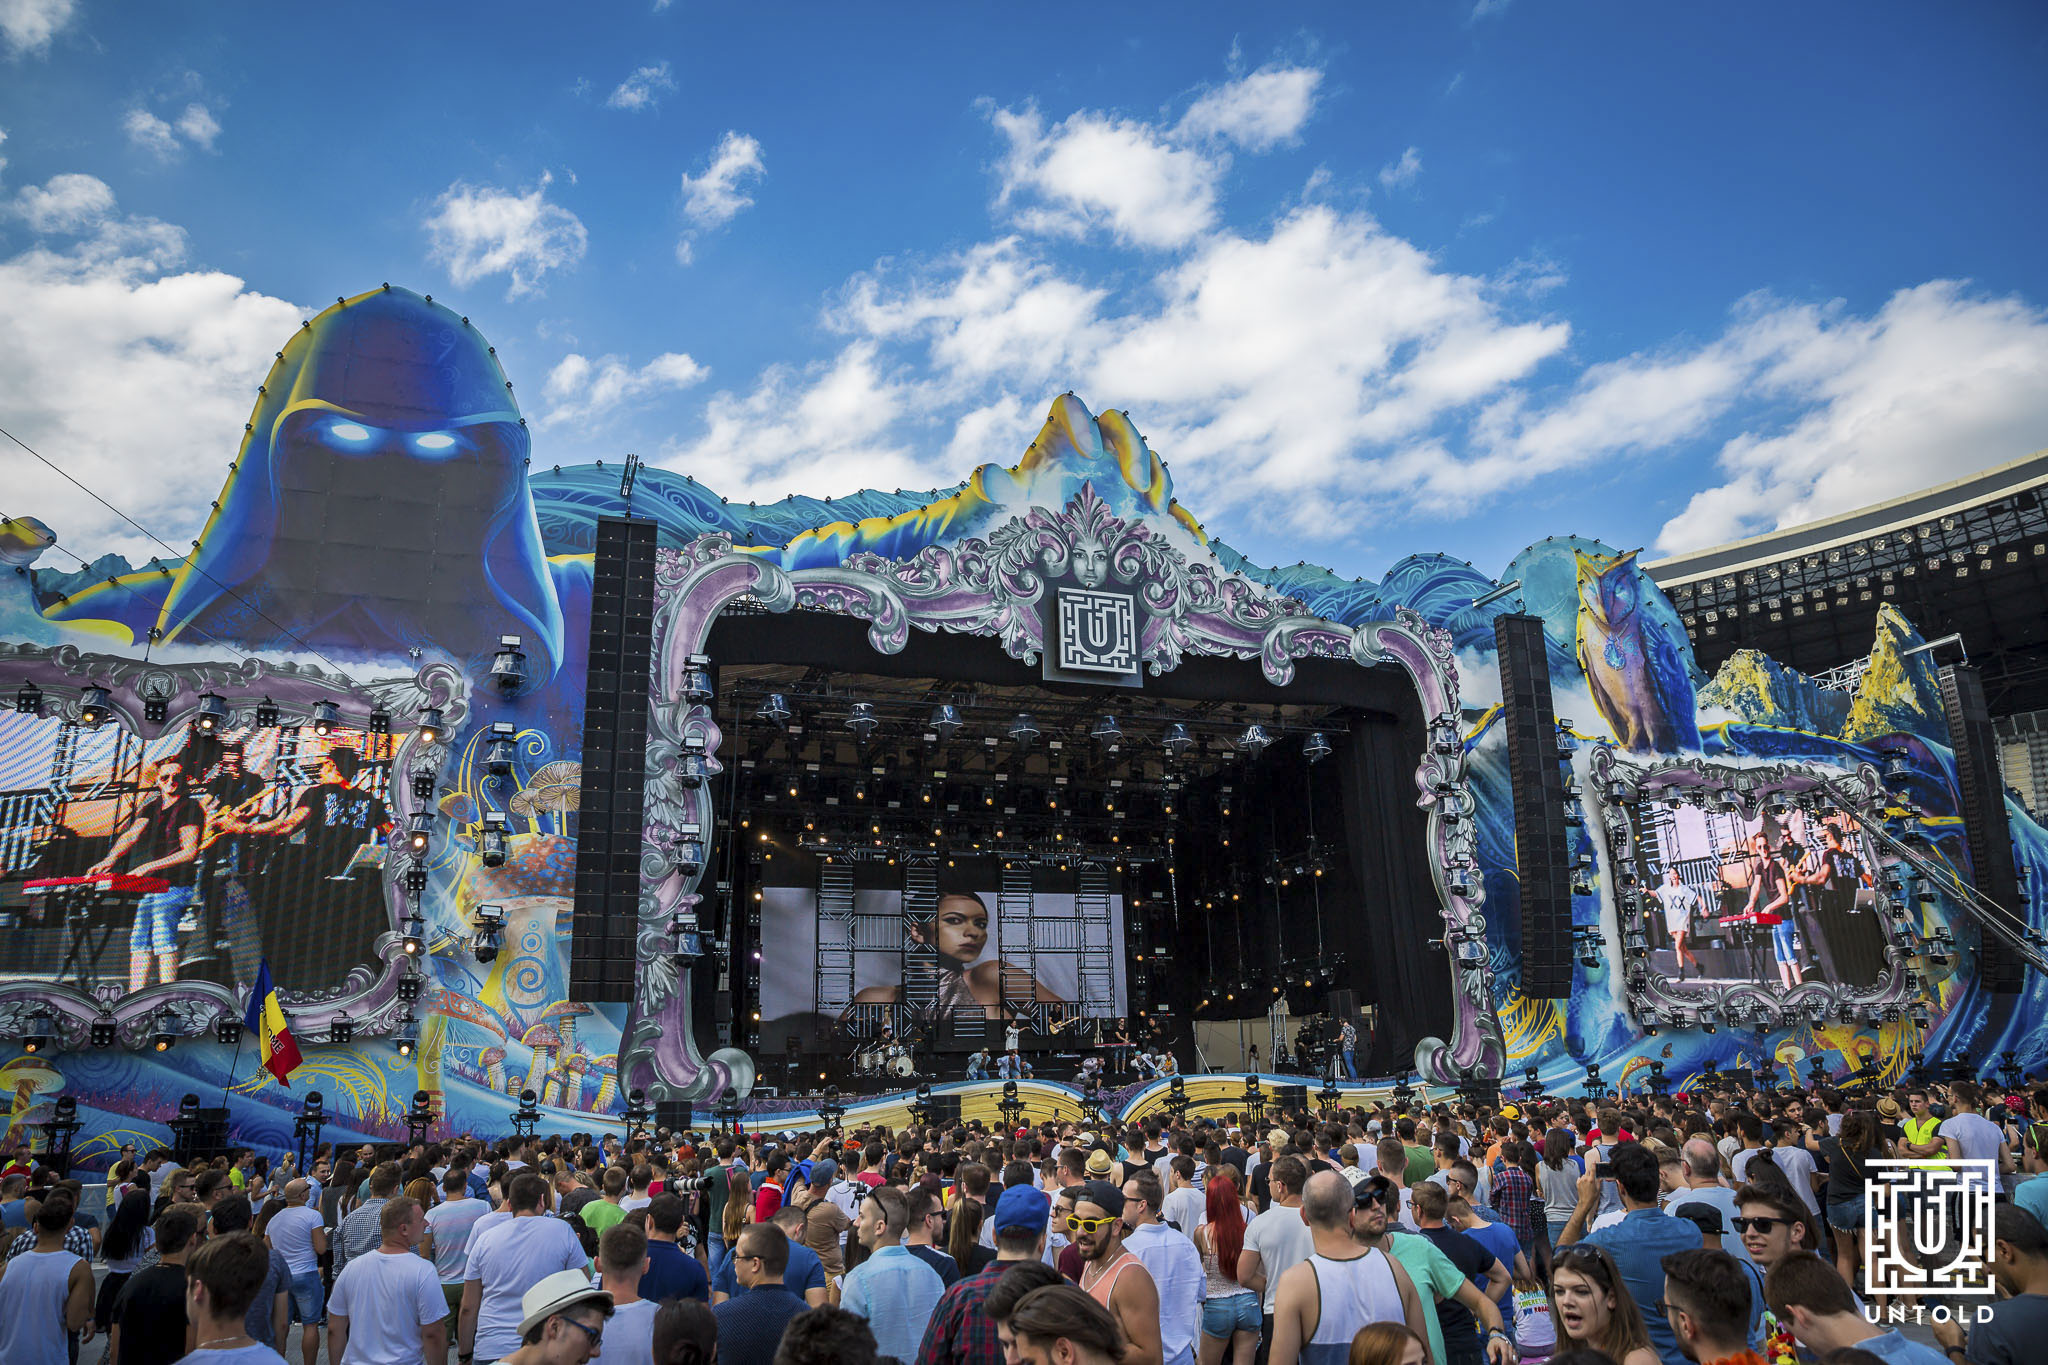 untold main stage during daylight